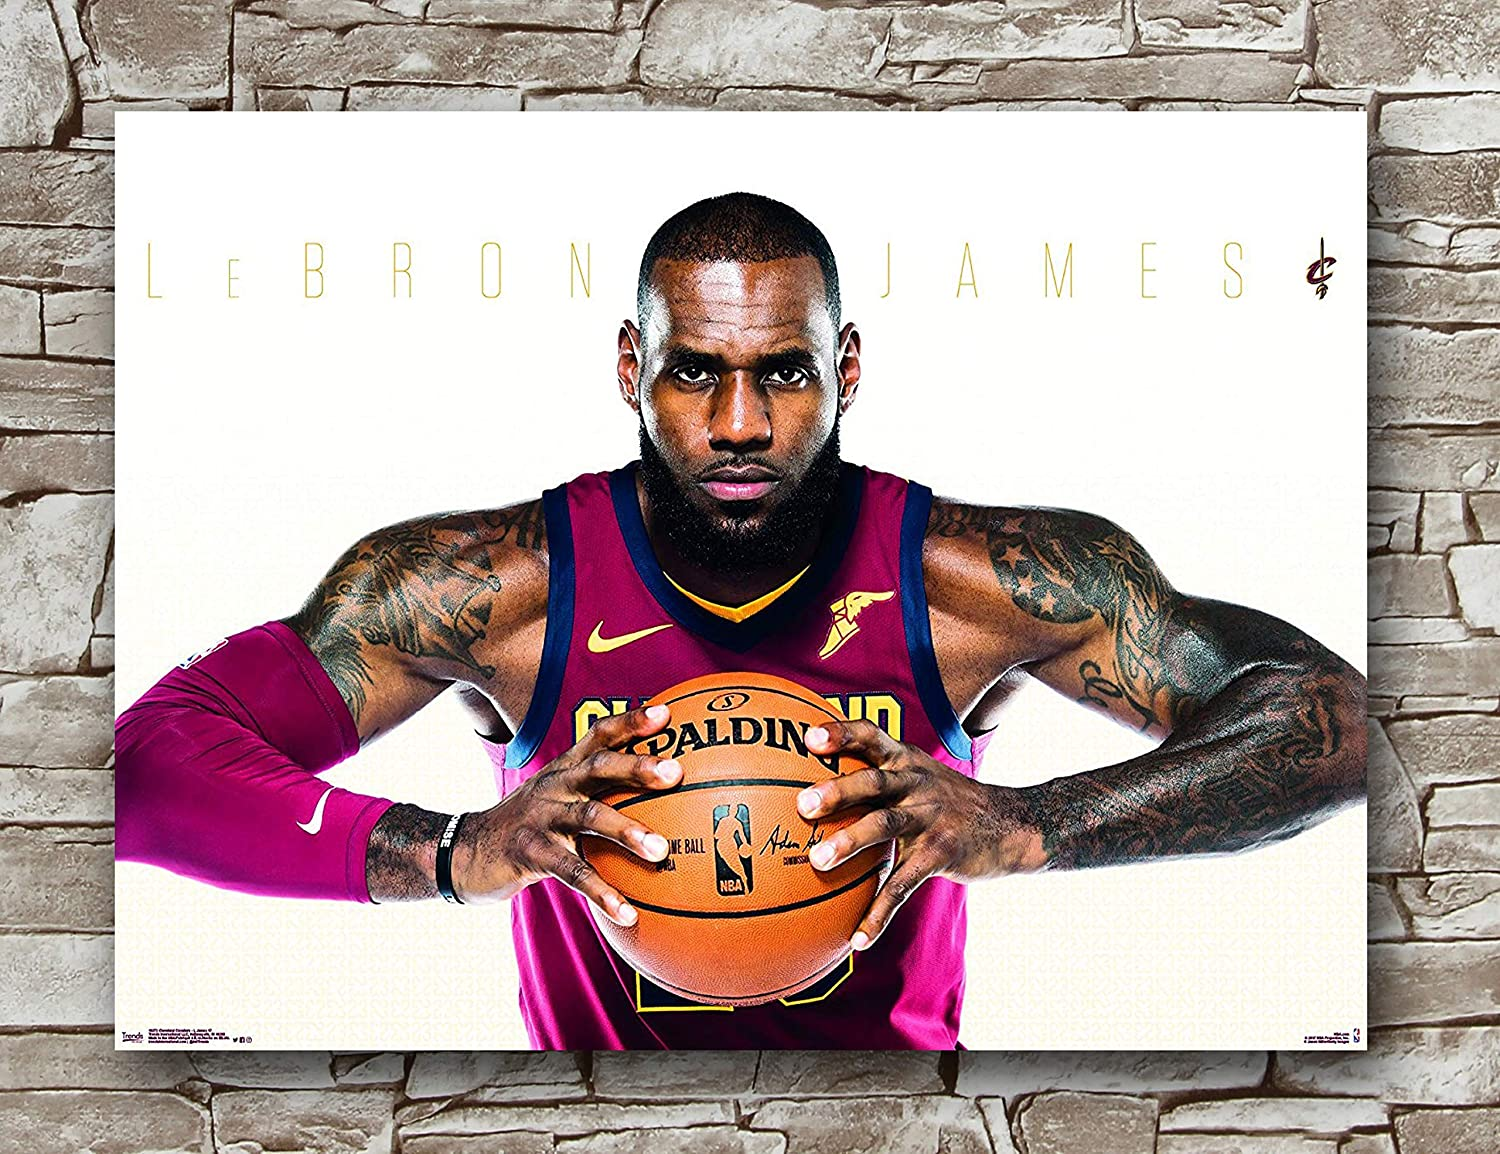 Huawuque Cleveland Cavaliers Lebron James Poster Standard Size | 18-Inches by 24-Inches |Lebron James Posters Wall Poster Print